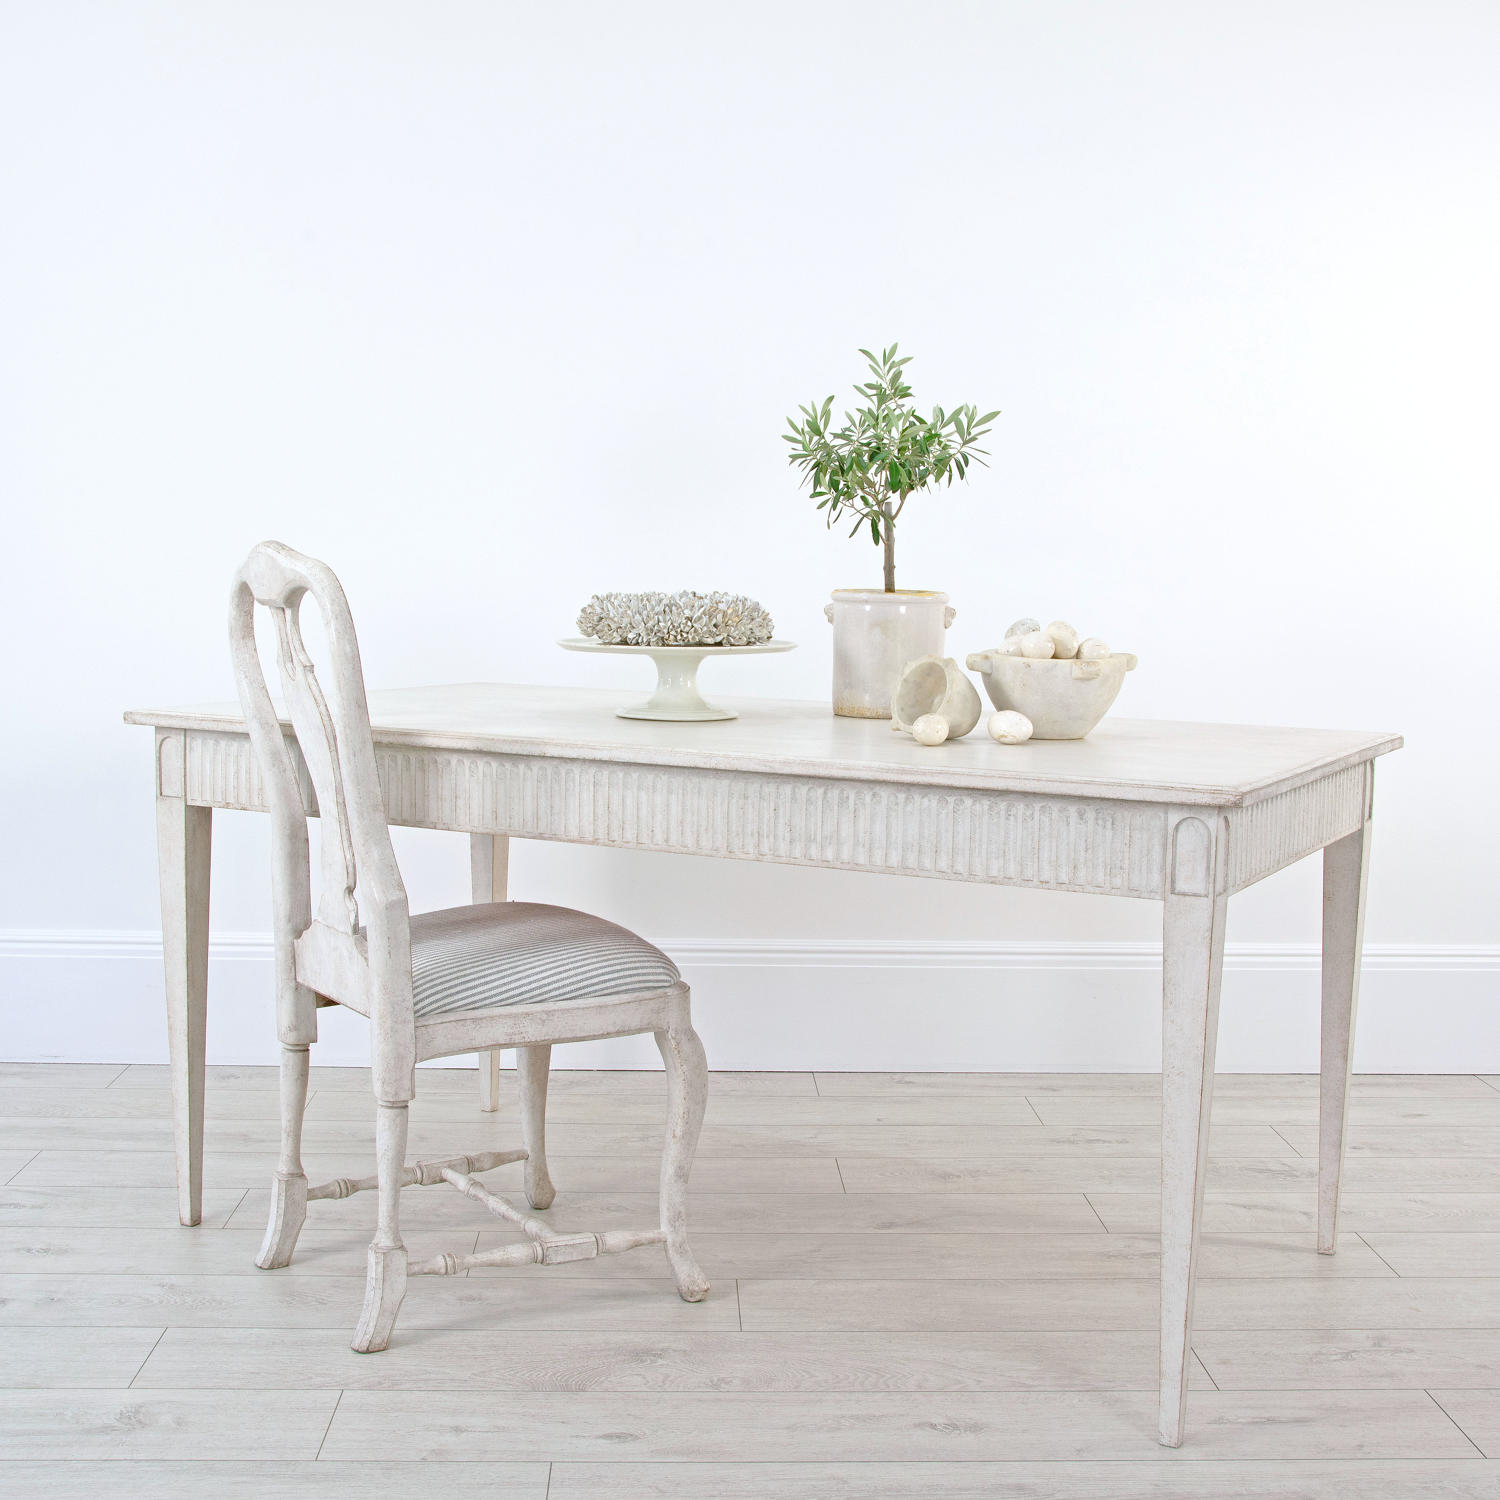 Dining table lifestyle shot